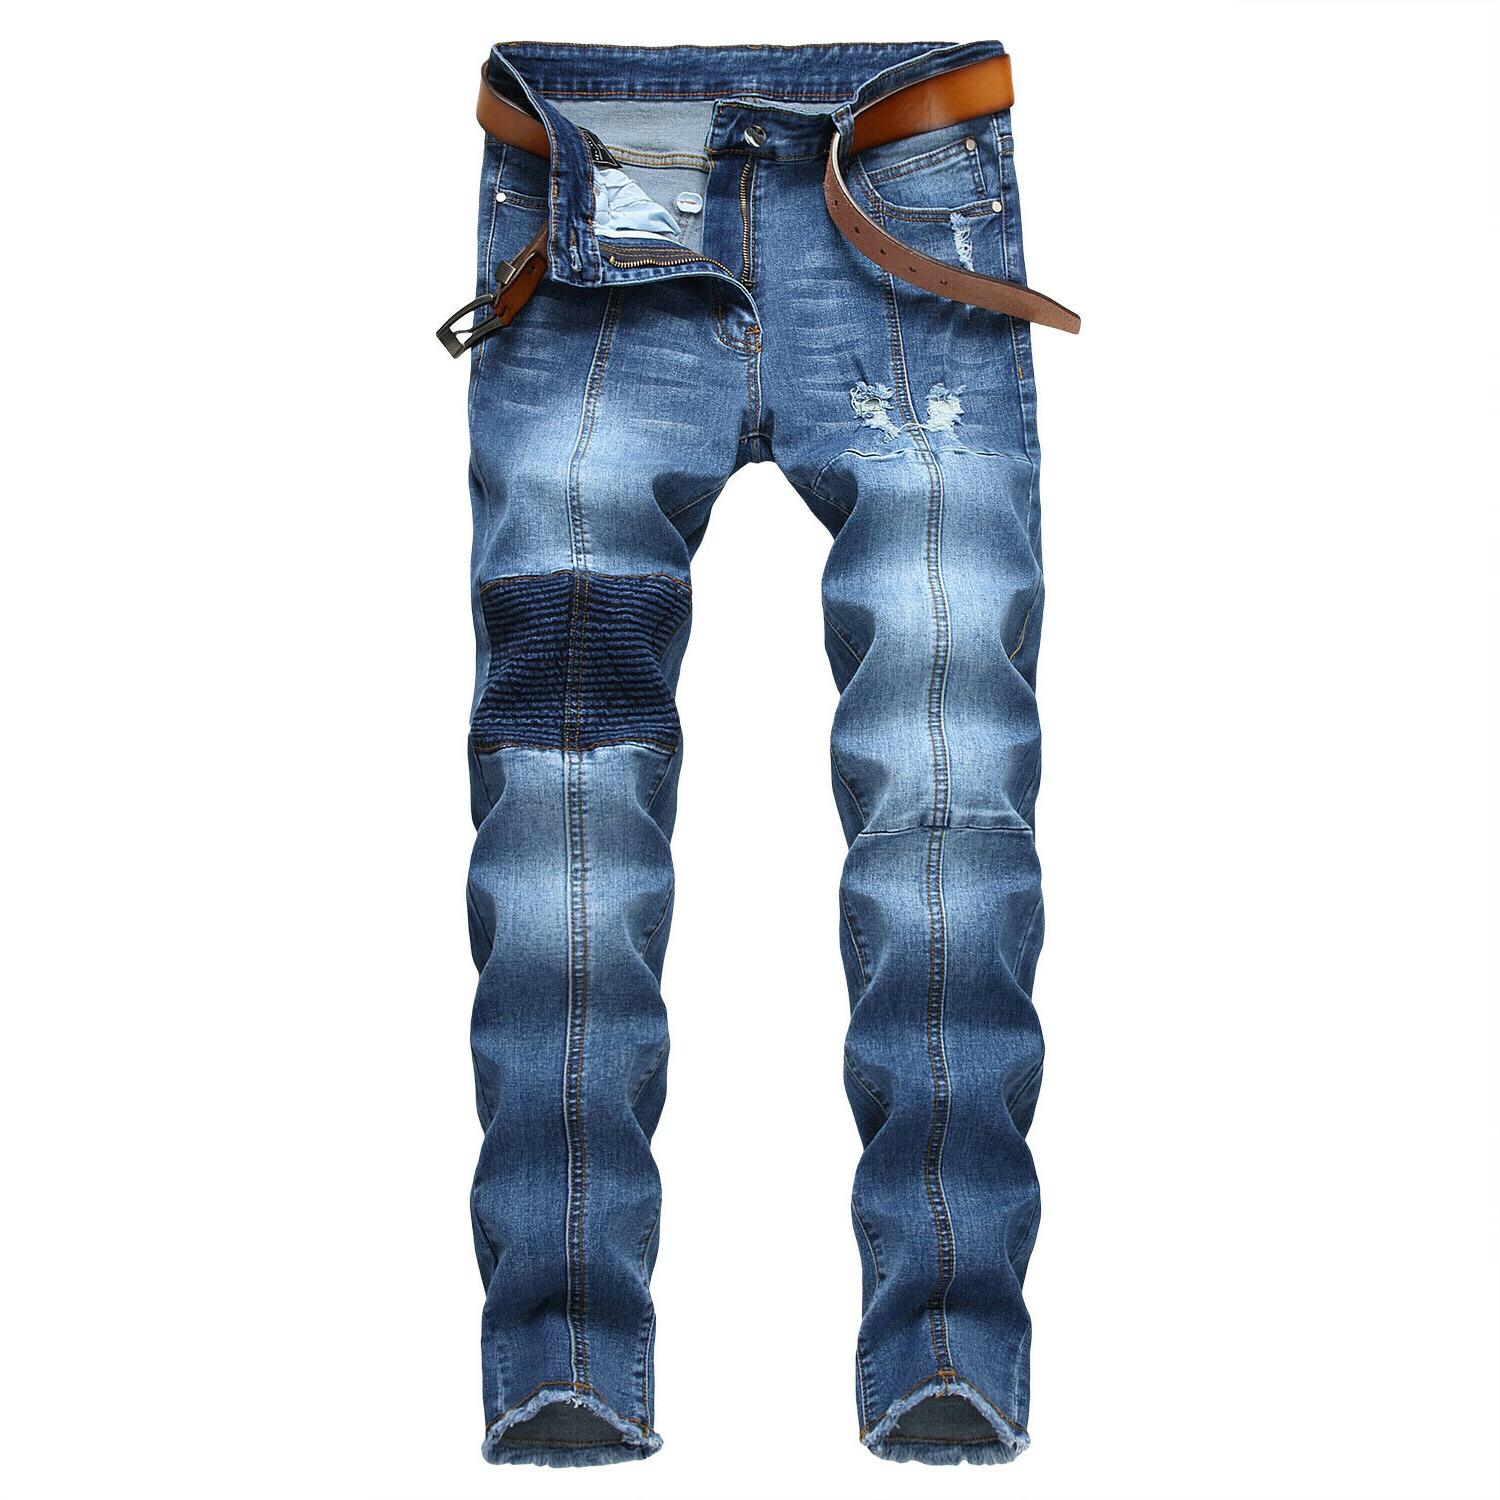 Men's Ripped Jeans Bleached Distressed Slim